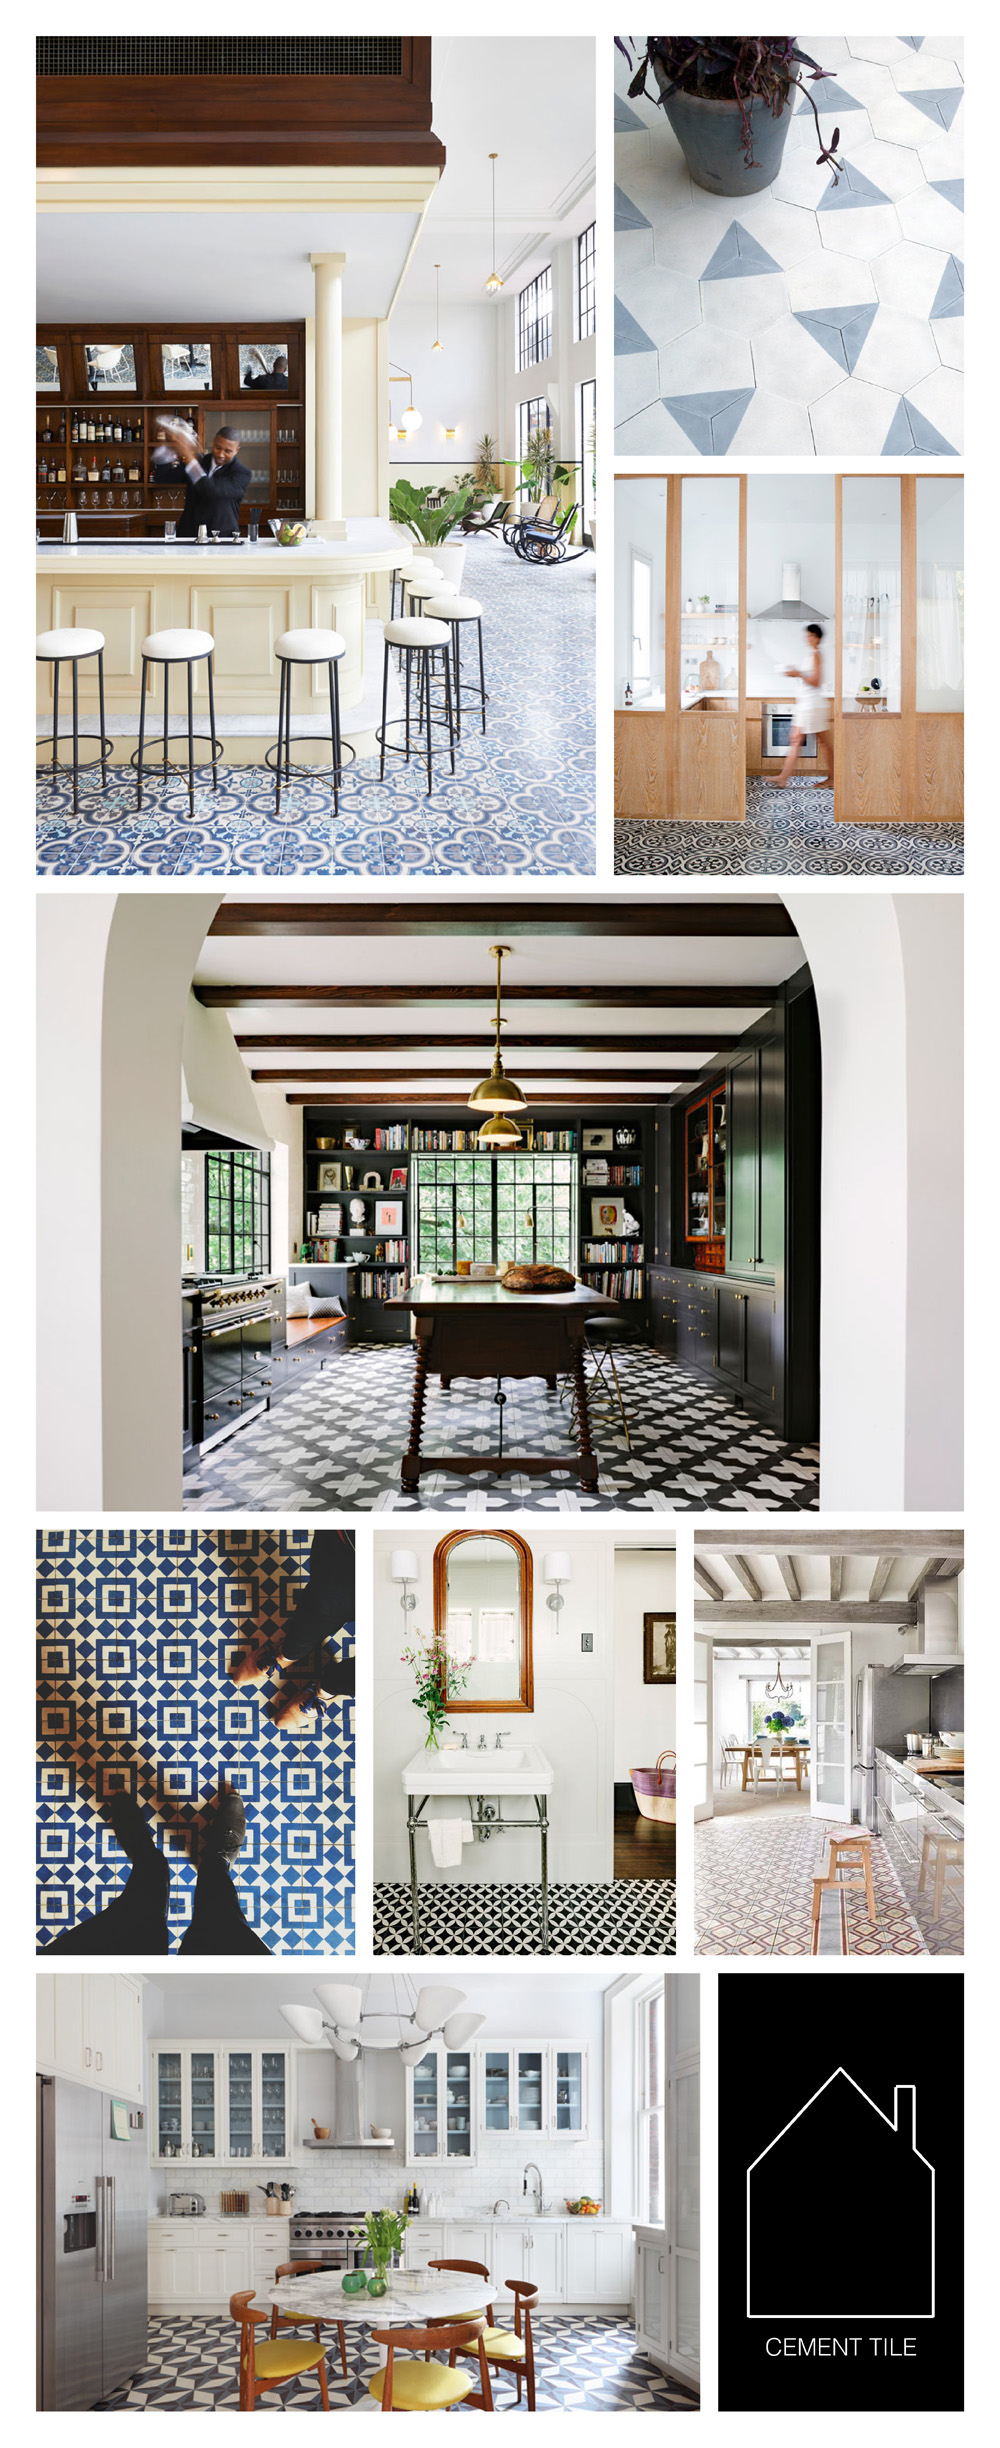 from top left -  Ace Hotel in  Panama City  via  DOMAINE    -  source unknown  -  via  Coco & Kelley   -   Alhambra Kitchen  by  Jessica Helgerson Interior Design   -  via  THE MADE SHOP   -  via  Cement Tile Shop   -  via  Apartment Therapy   -  via  Desire to Inspire  photo by  Alexander James